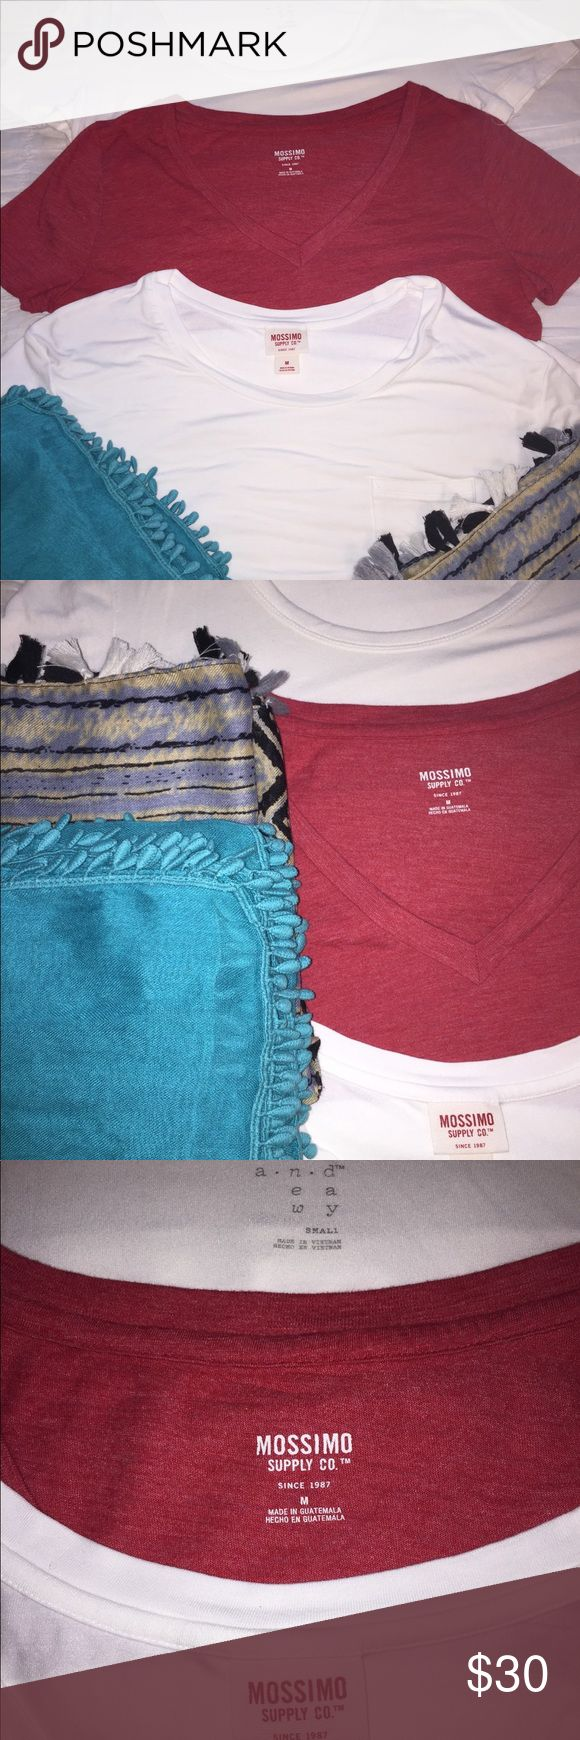 T-Shirt and Scarf Bundle🖤 Bundle of three t-shirts and two scarves! ⭐️Two Mossimo Supply Co. t-shirts, a red v-neck and a white scoop neck! Very lightly worn! Both size M! ⭐️One white scoop neck a•n•d t-shirt that is so soft and comfortable! Very lightly worn! Size S! ⭐️Blue scarf with adorable tassel-like lining on the edge! Can be worn many ways and is such a cute addition to any outfit! ⭐️Multicolored, patterned infinity scarf with black, gray, and white tassels on the edge! So cute and…